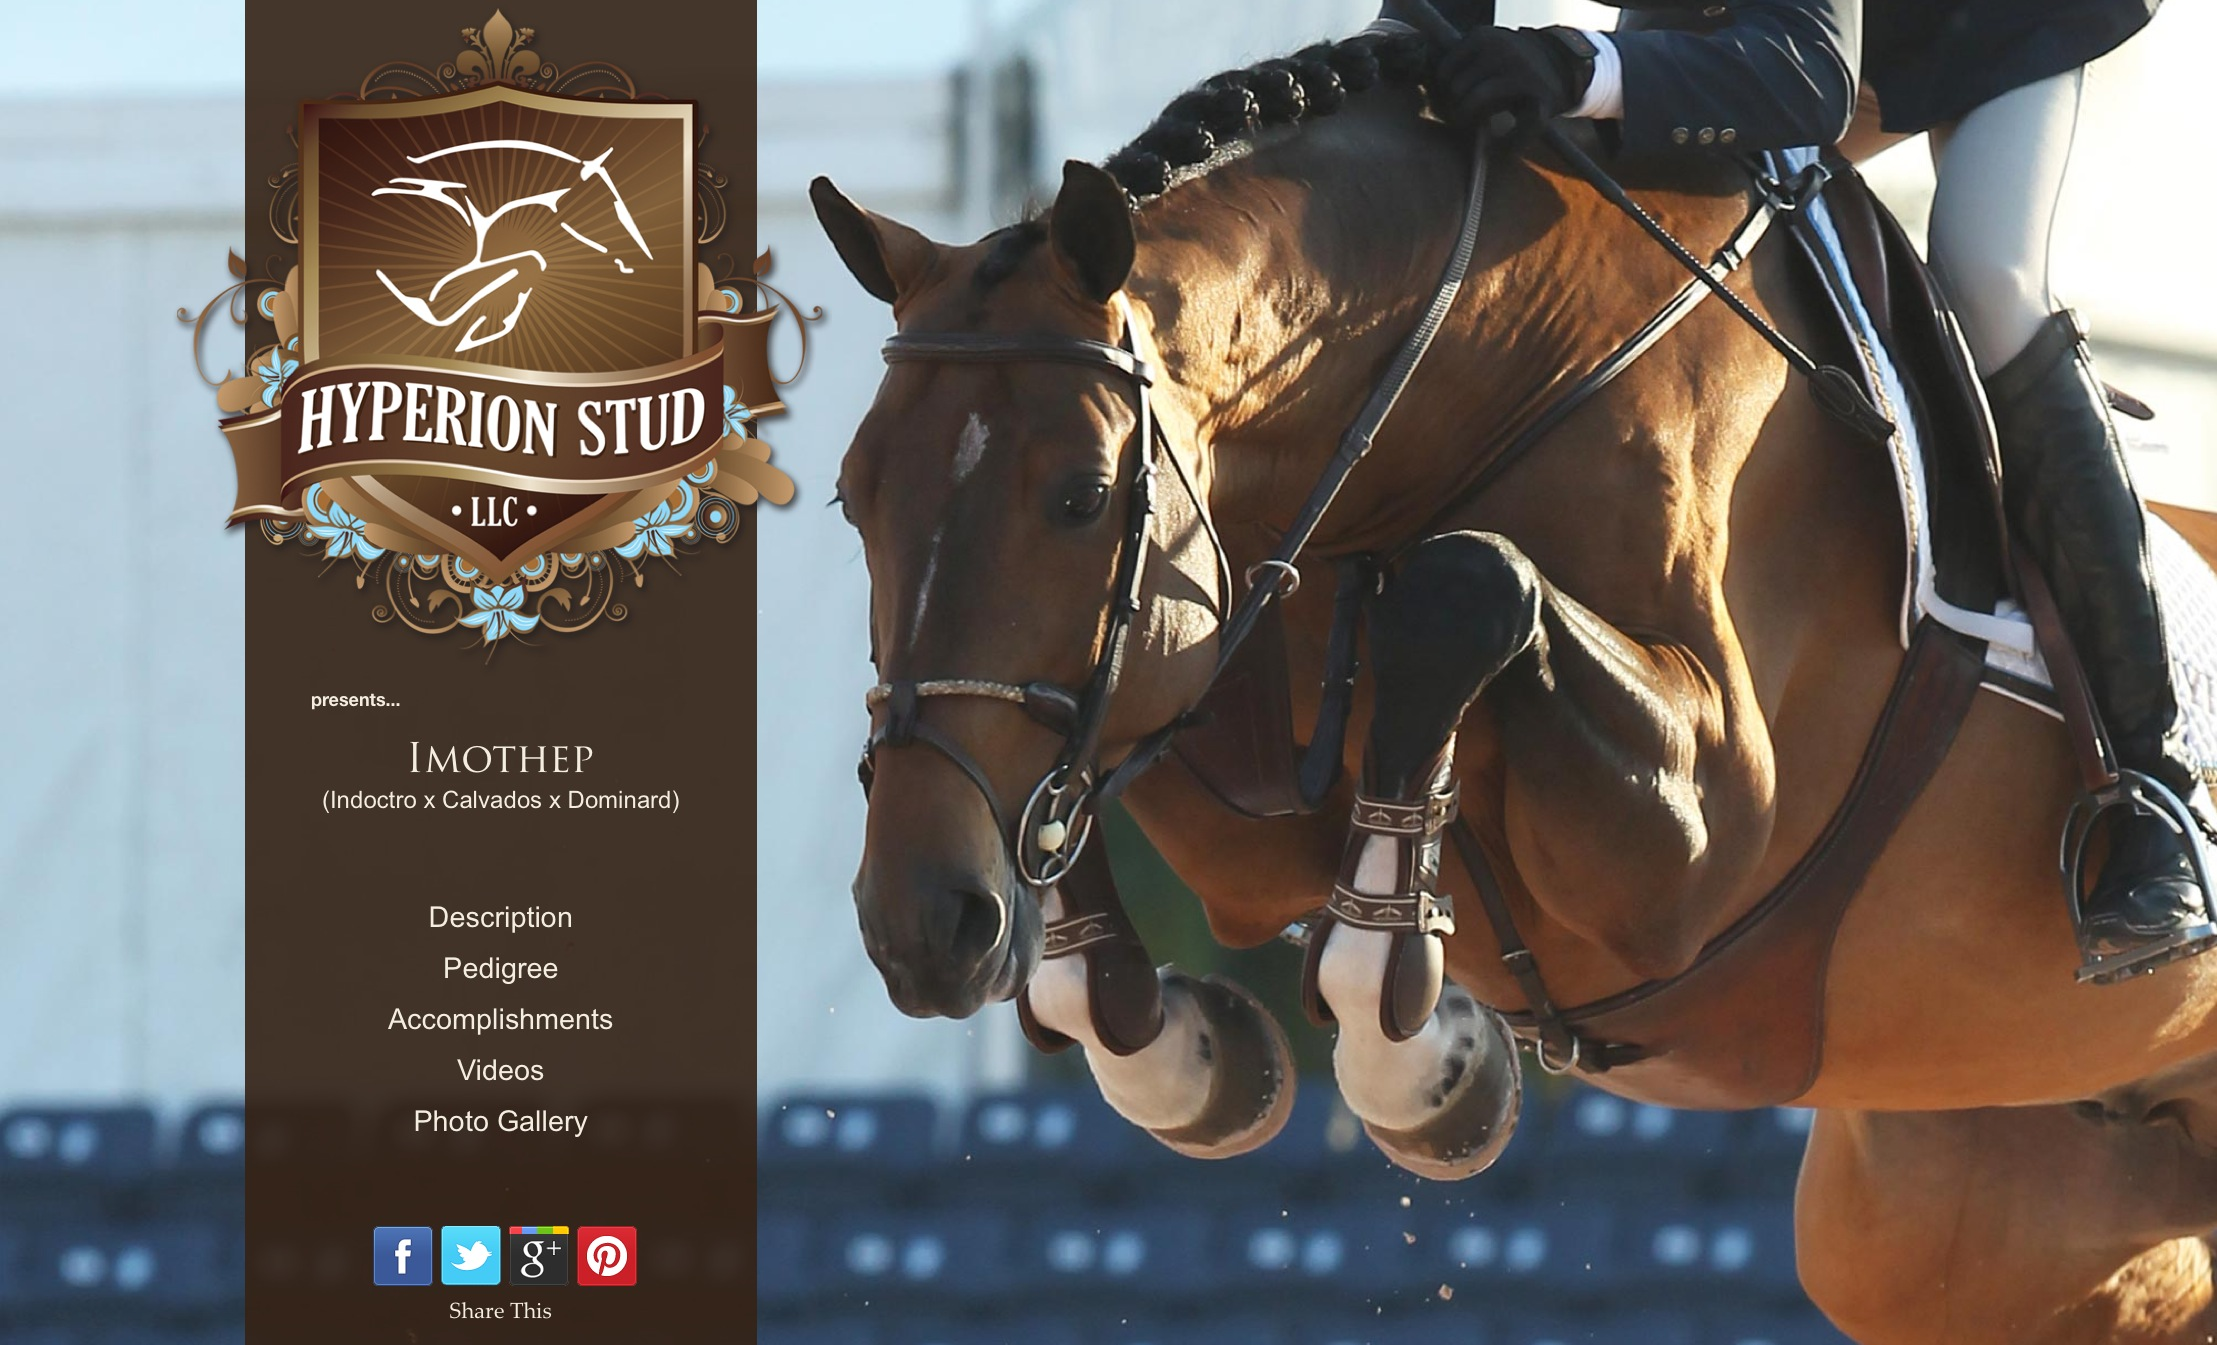 Official Debut of the NEW HyperionStud.com!